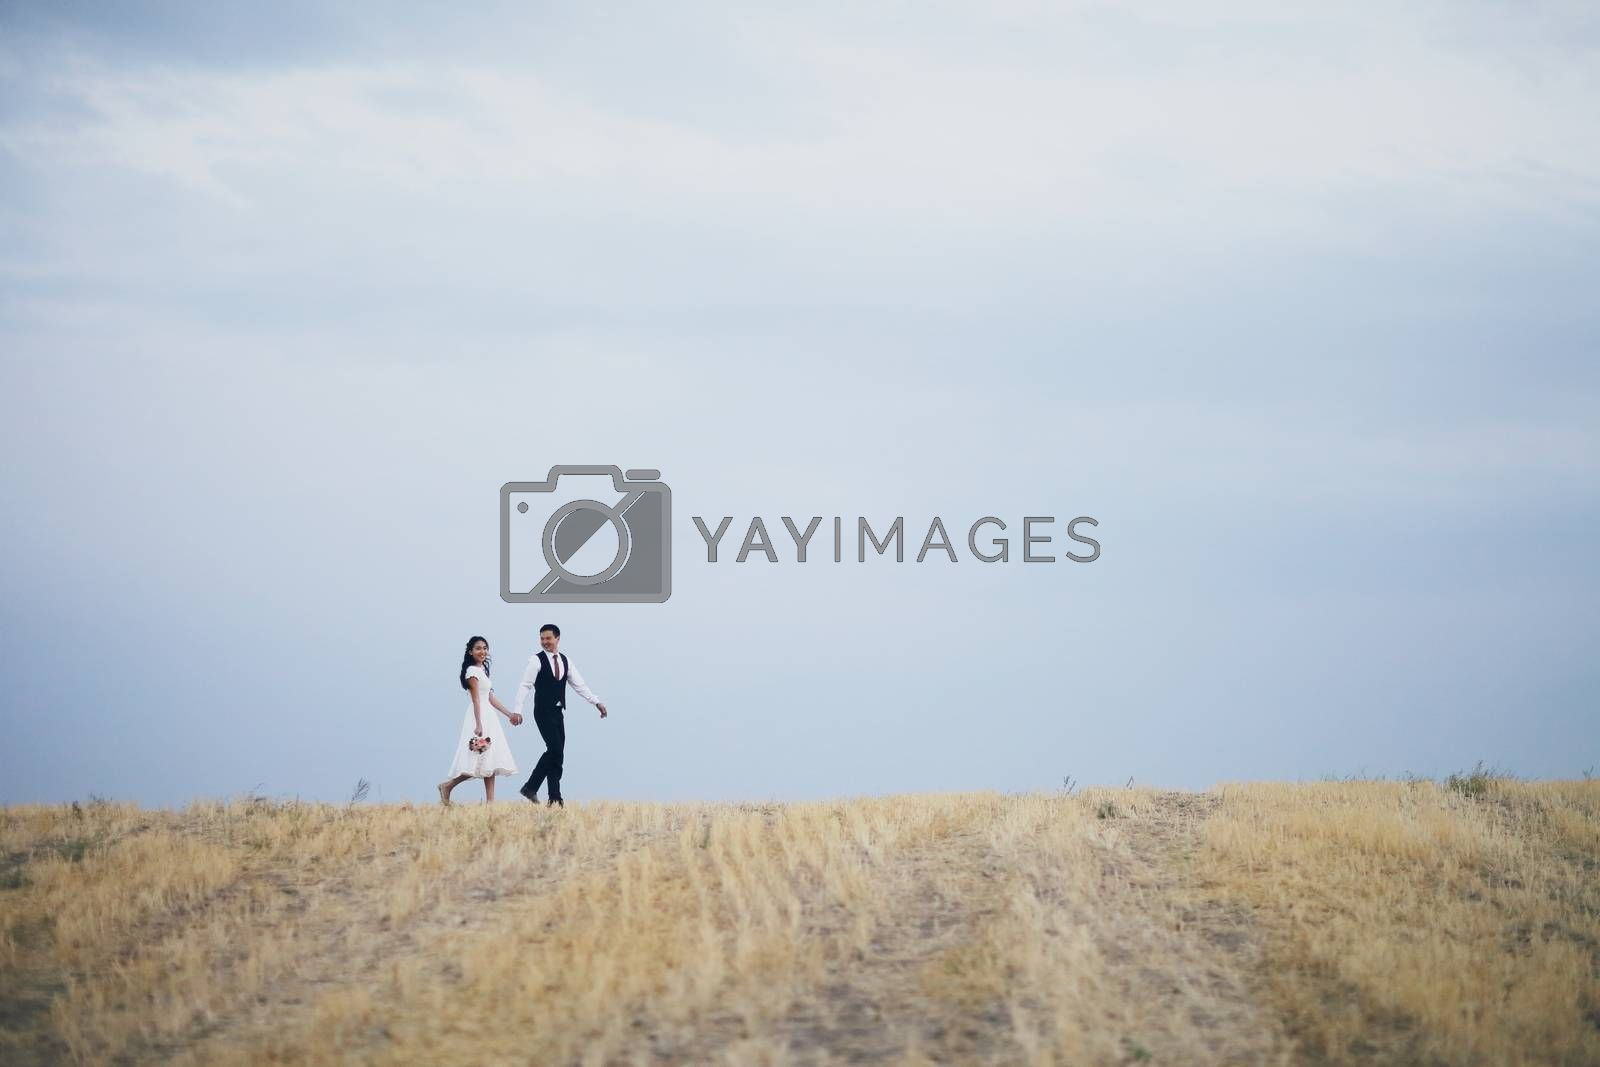 The bride and groom hold hands, hug each other and walk in the park. wedding. High quality photo